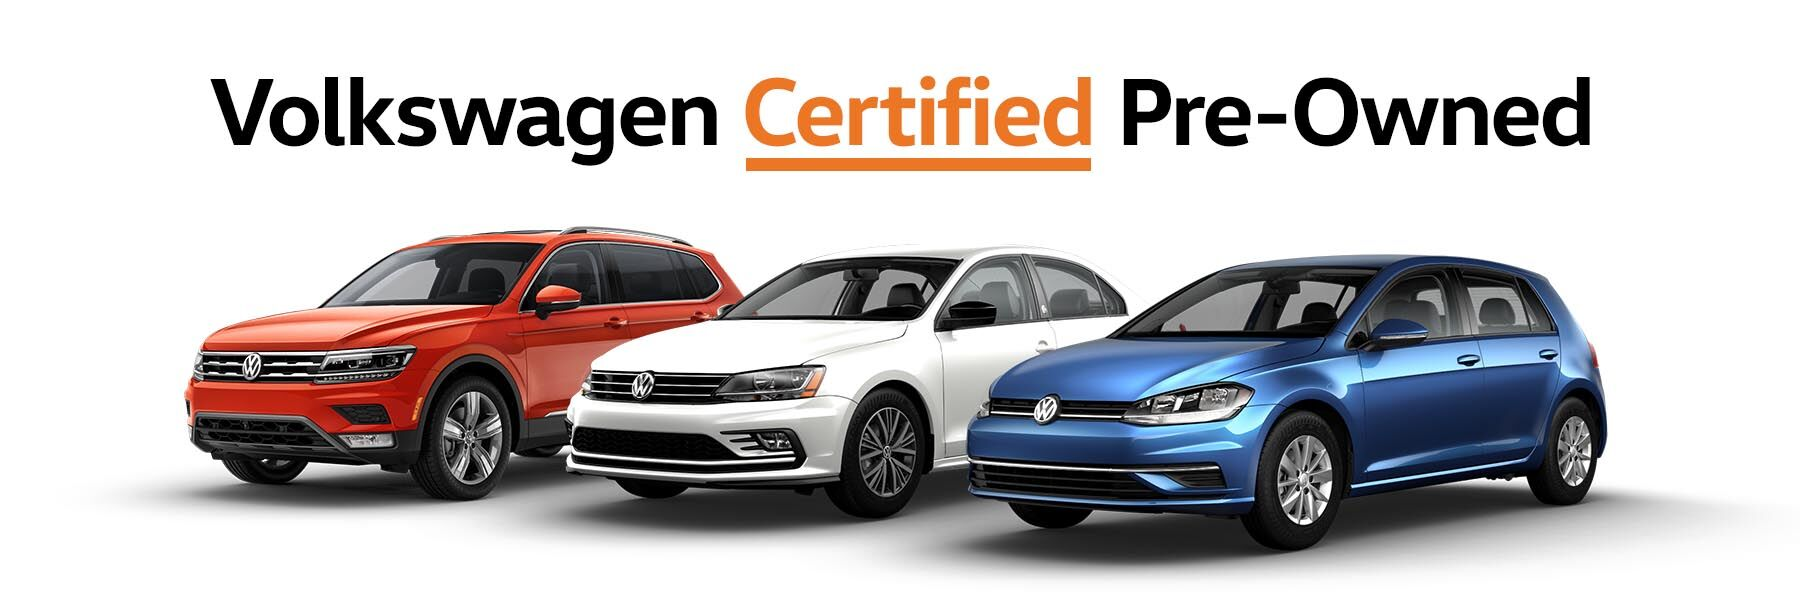 Volkswagen Certified Pre-Owned in Austin, TX